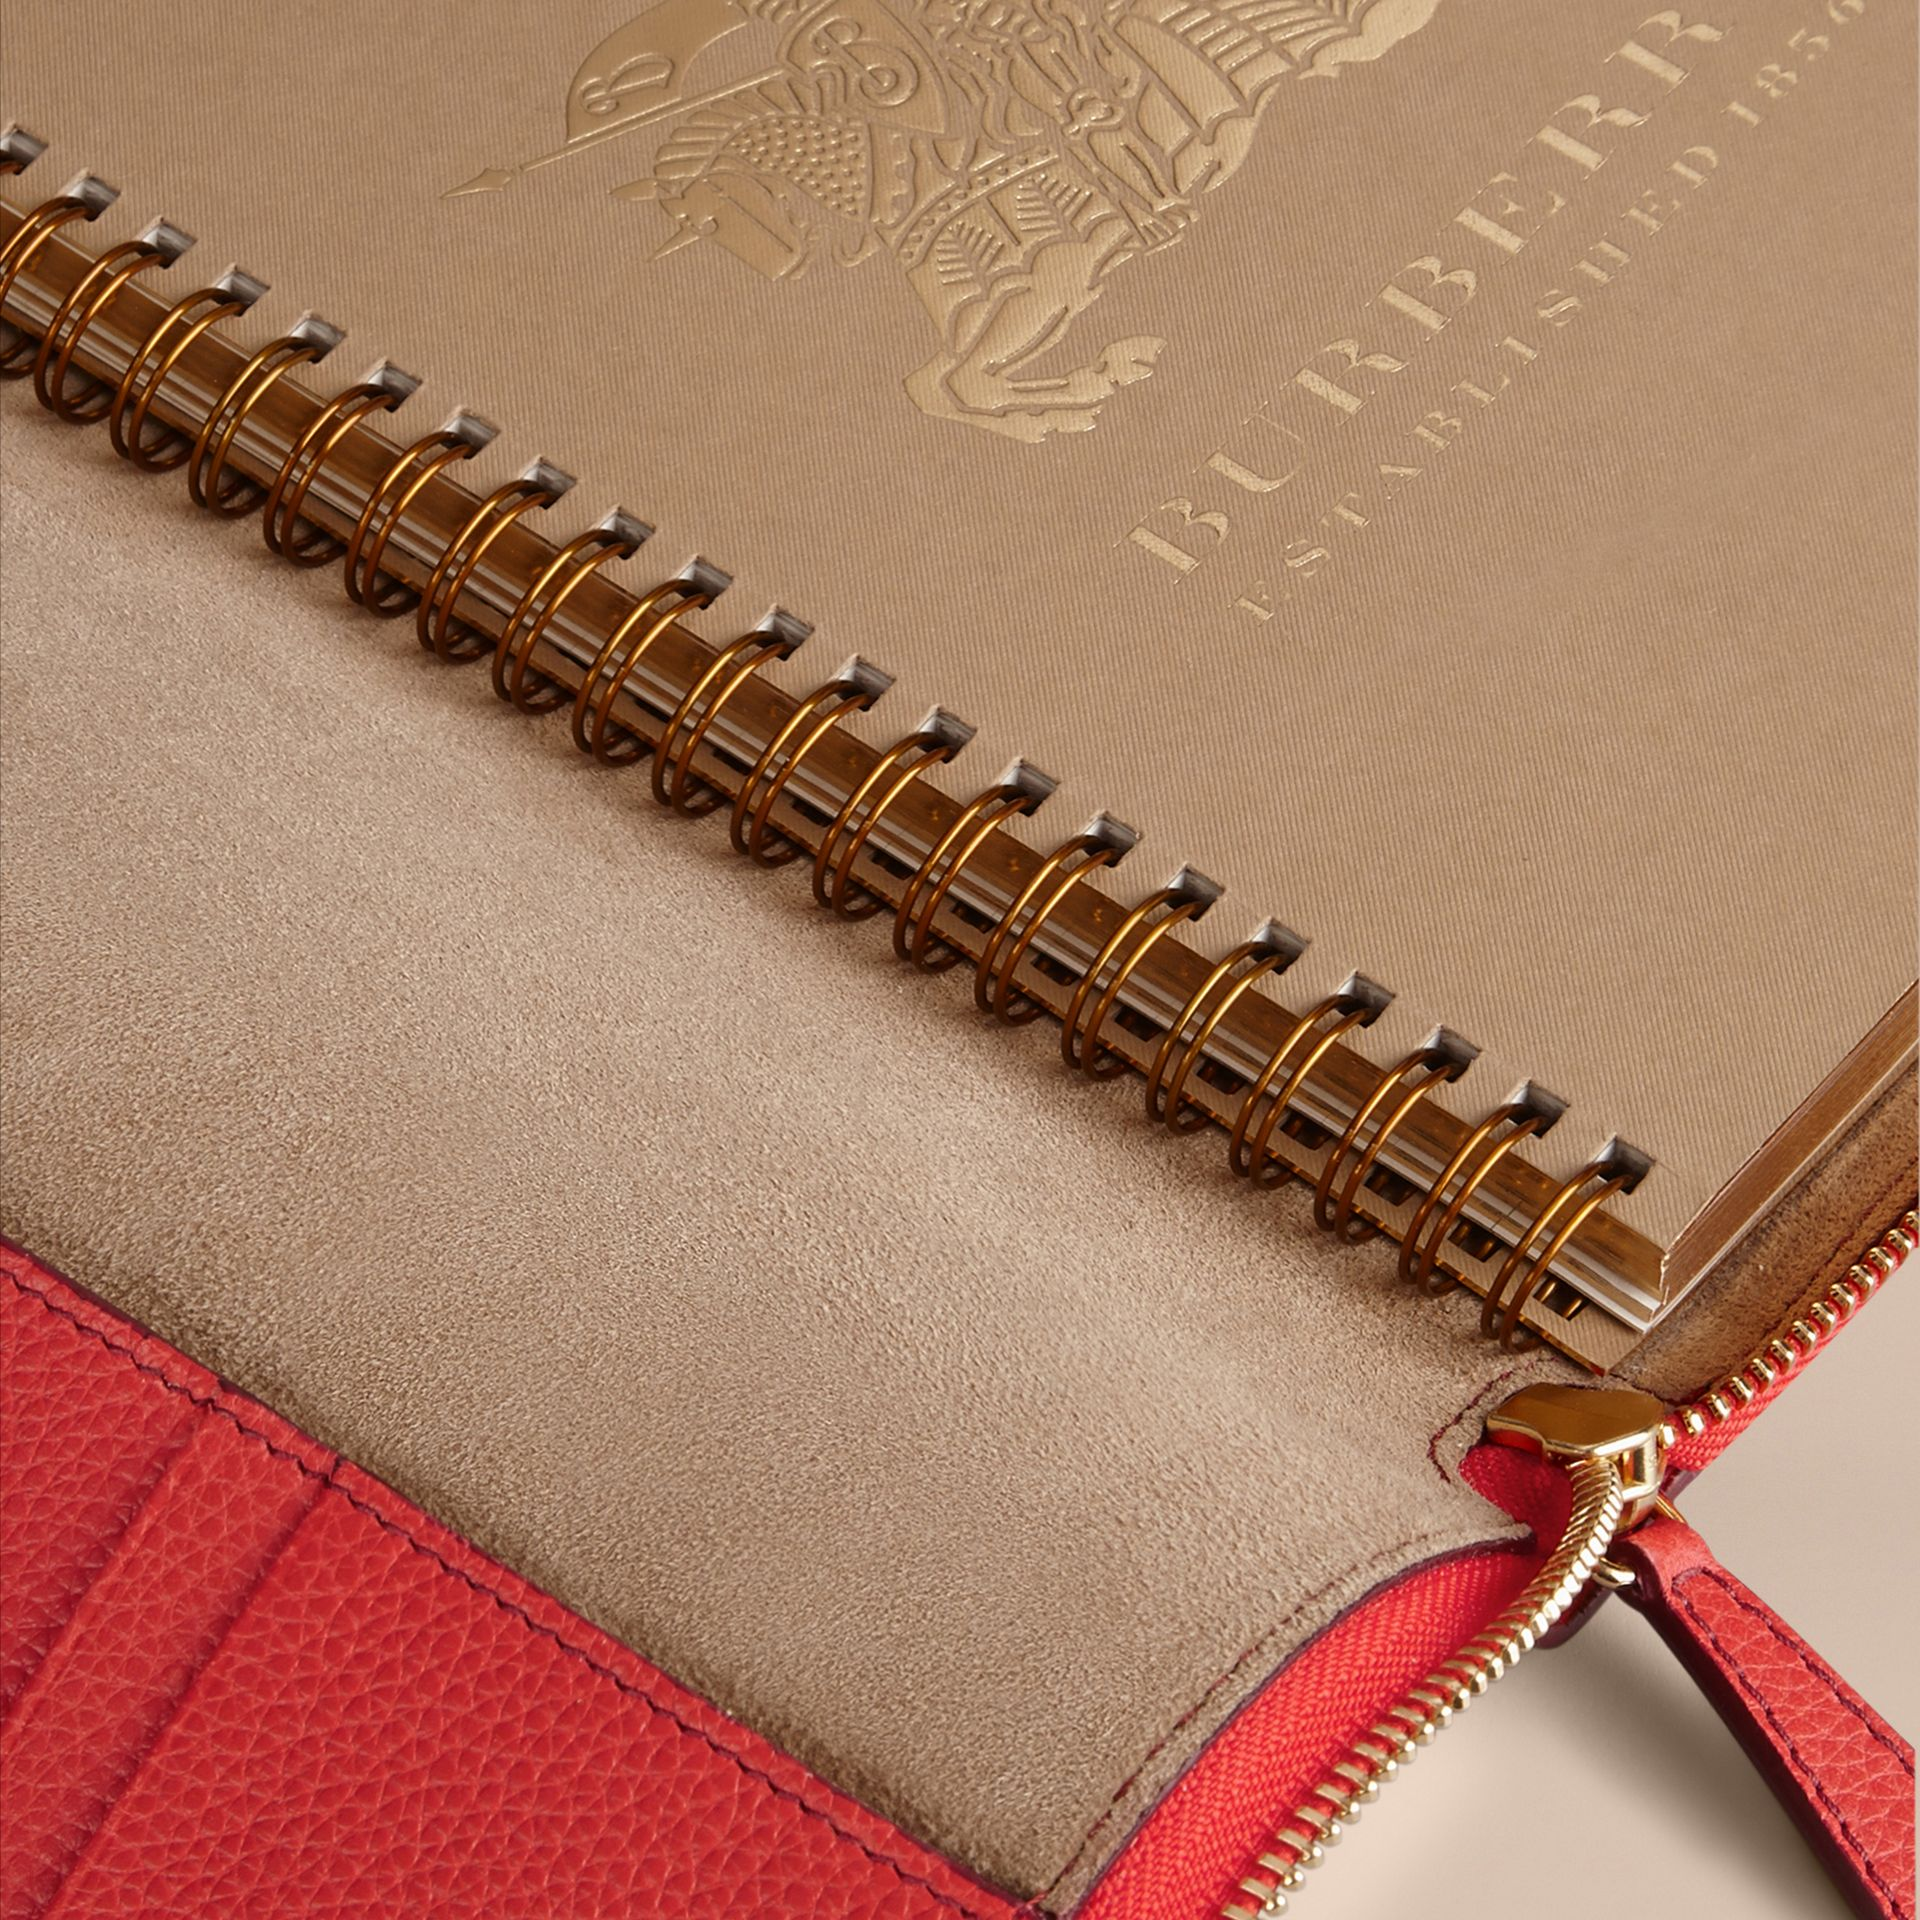 Ziparound Grainy Leather 18 Month 2016/17 A5 Diary in Orange Red | Burberry Australia - gallery image 4